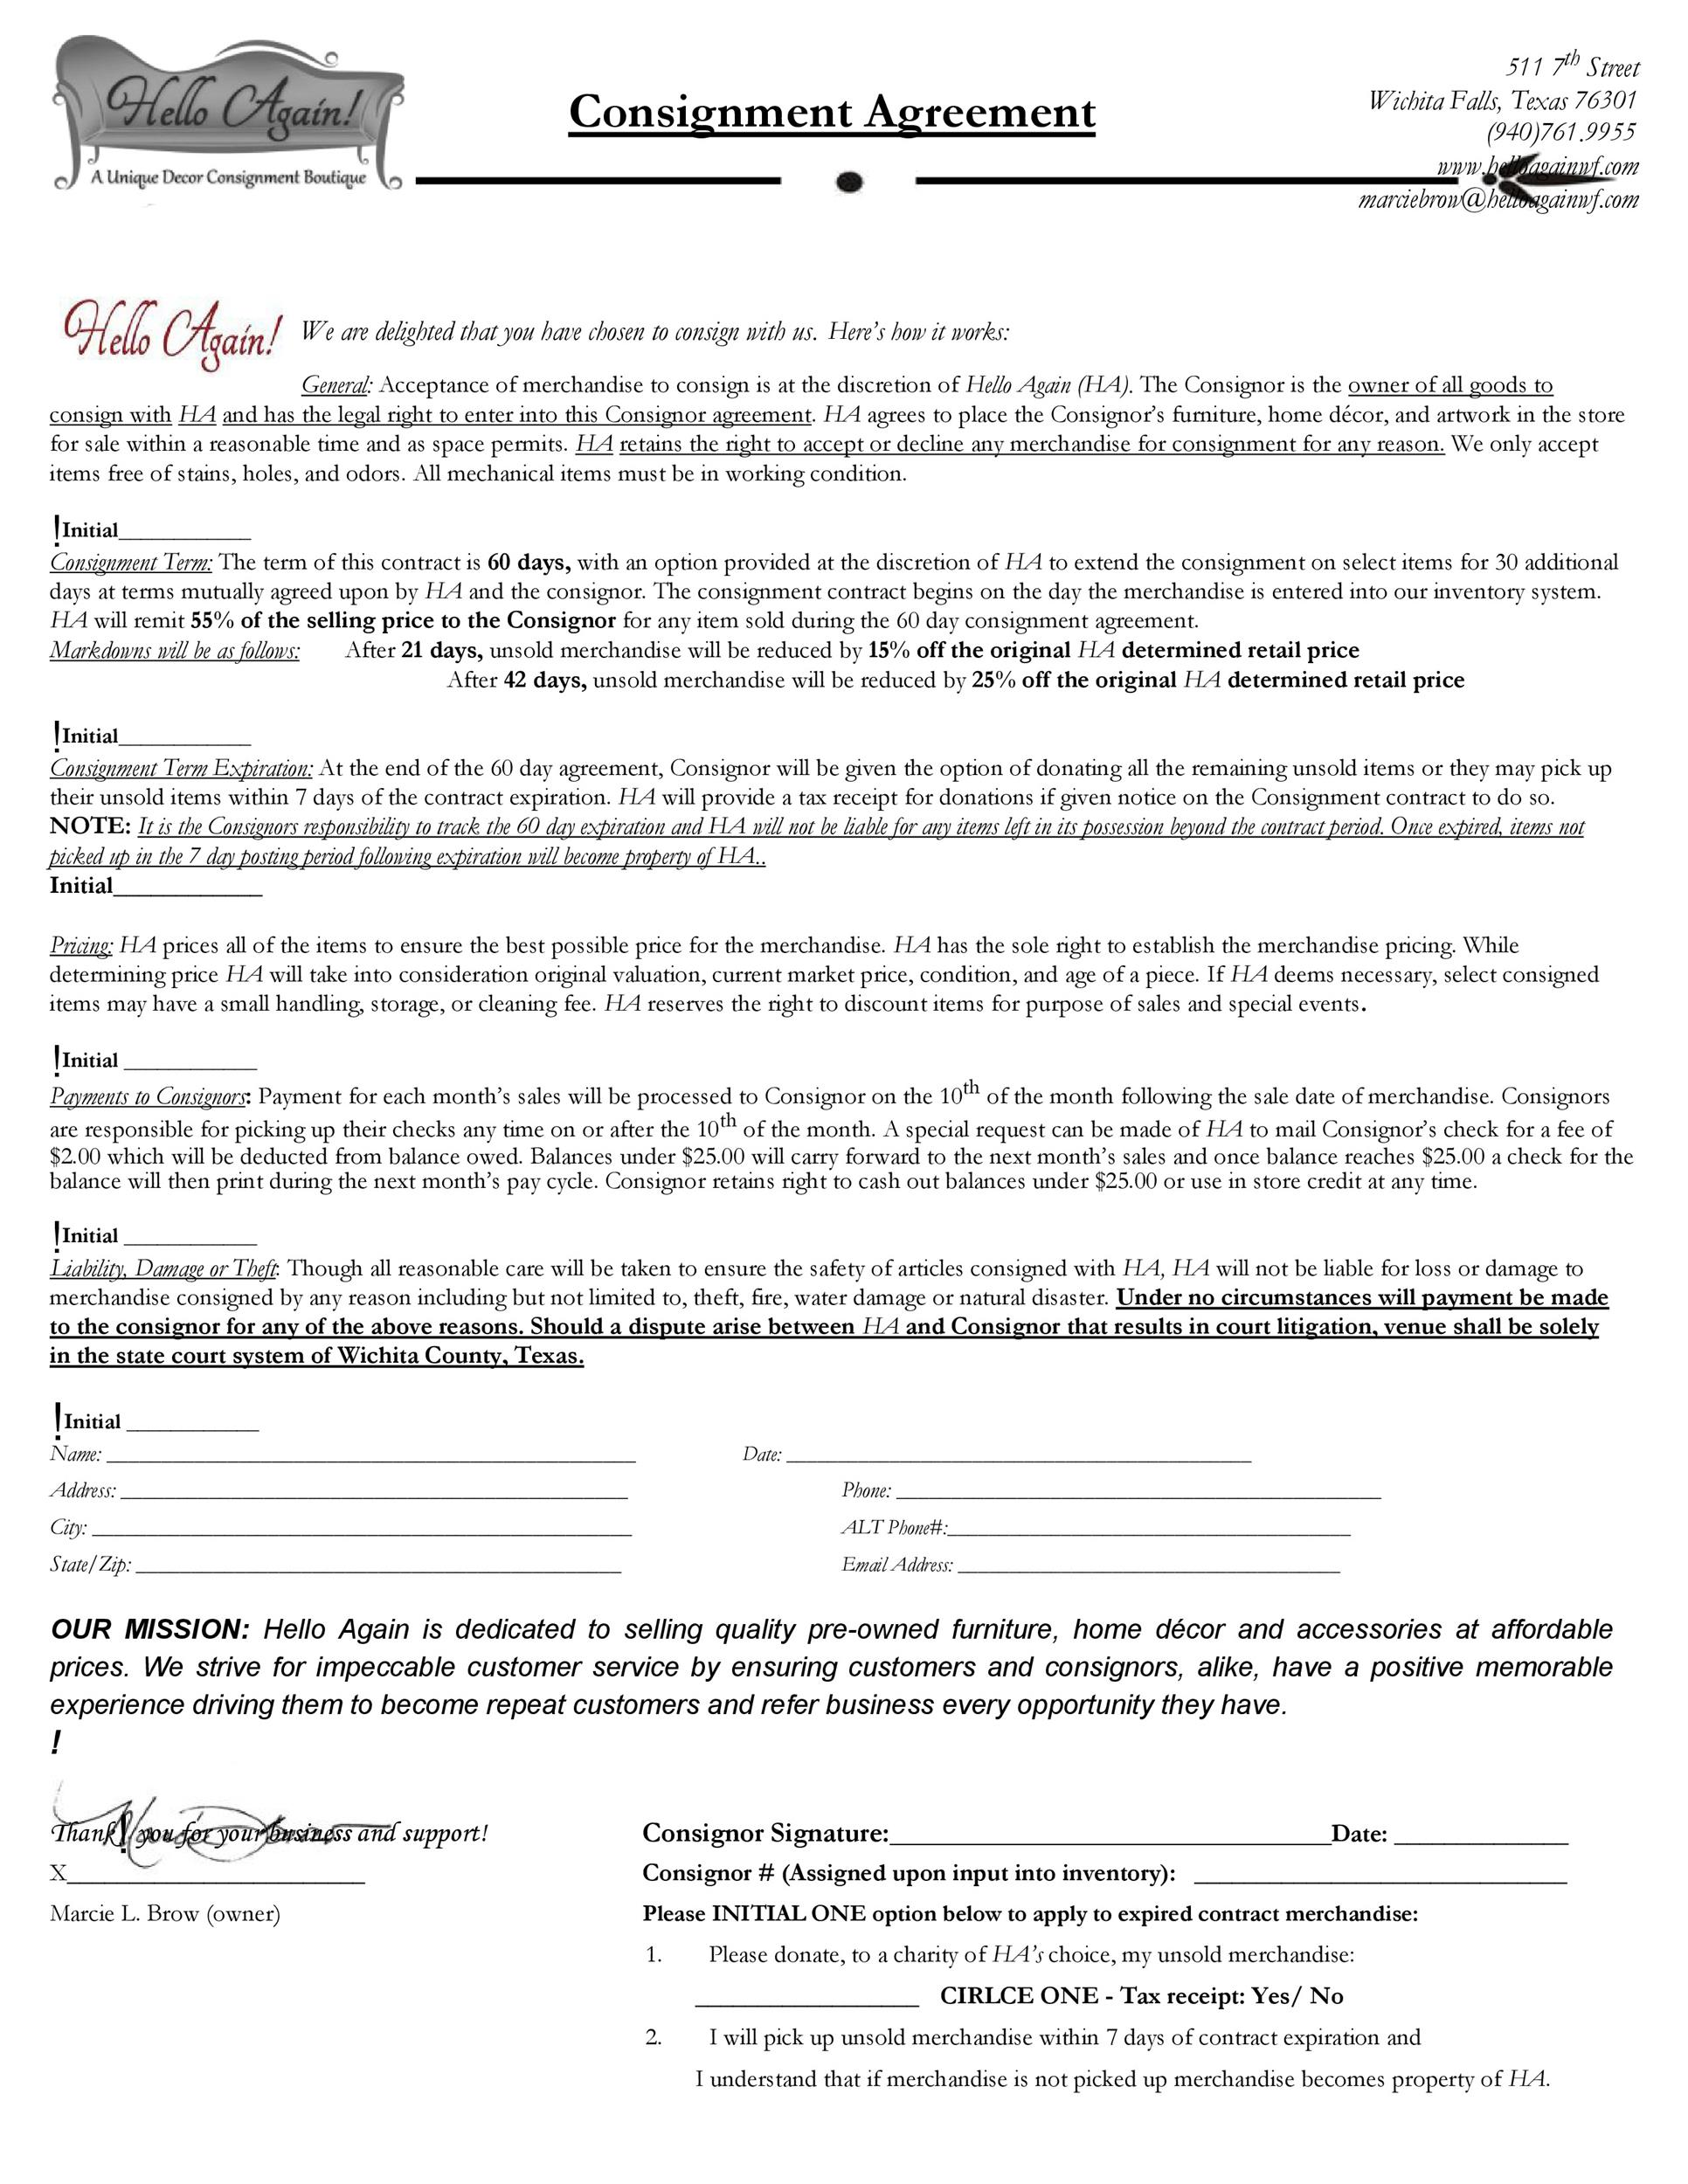 Free Consignment Agreement Template 23